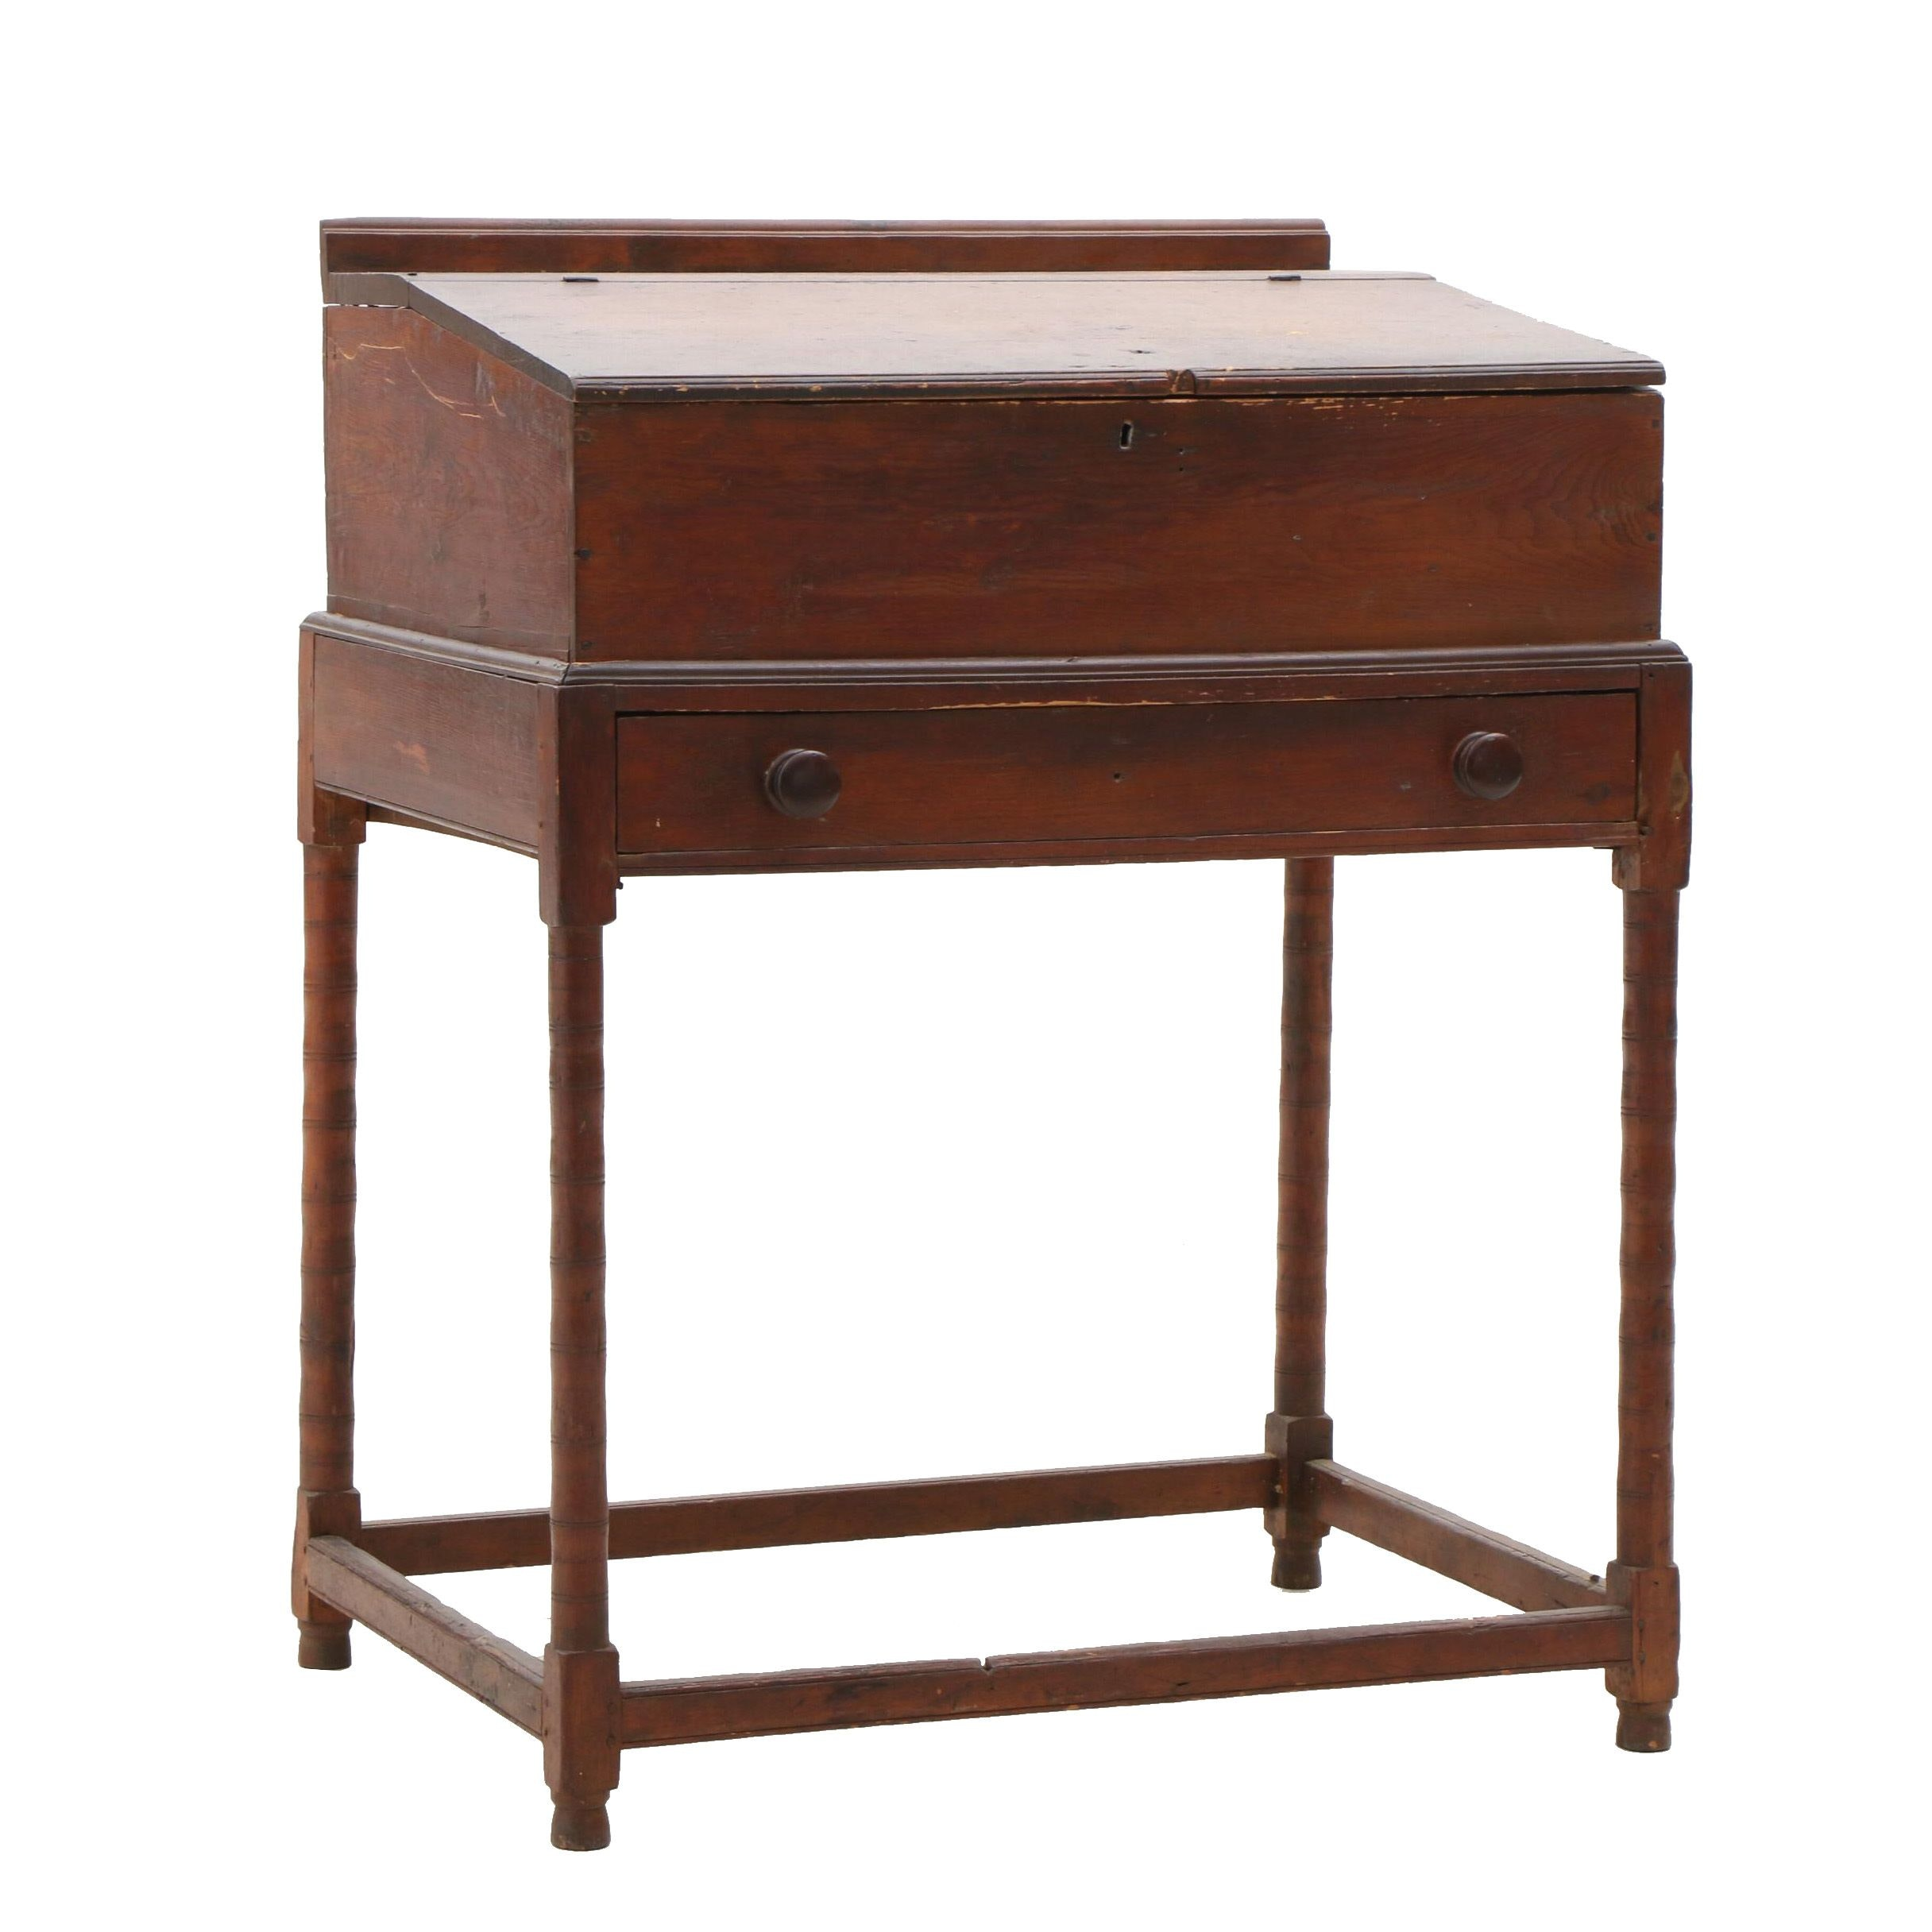 Pine Desk on Stand, Late Colonial Period, Circa 1770